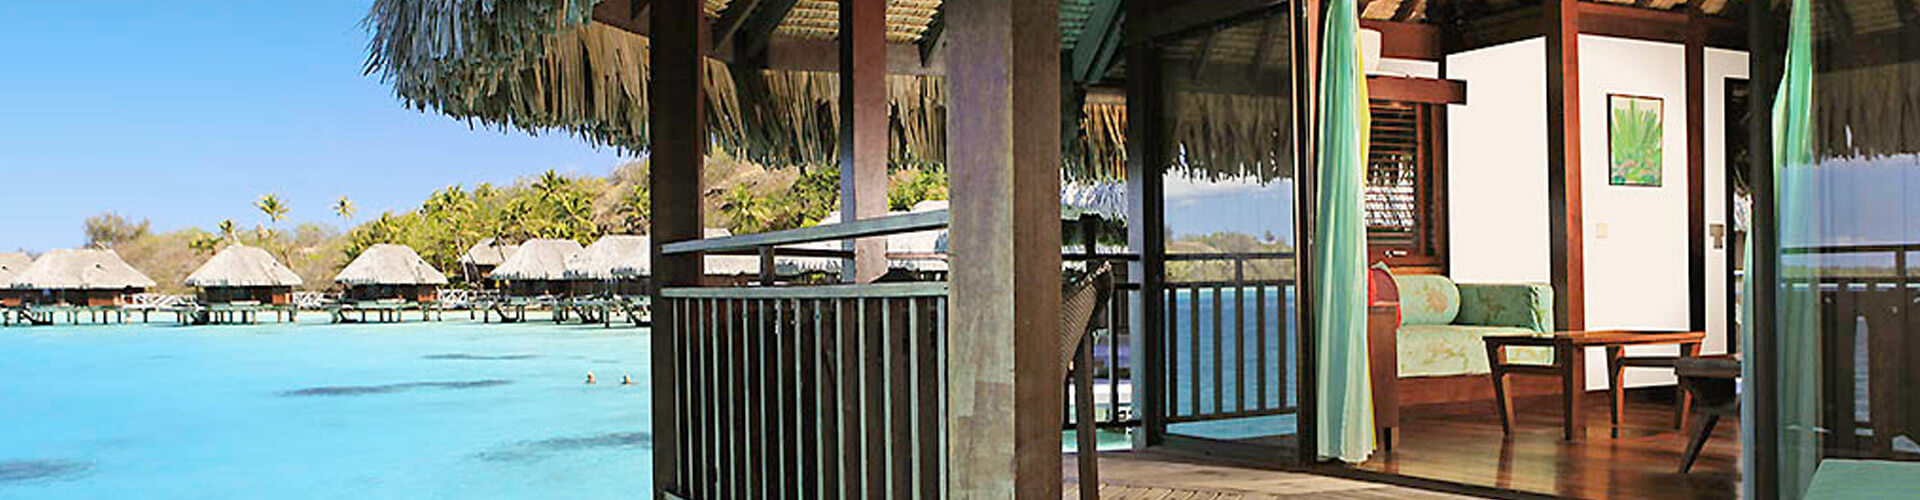 Phot of the overwater bungallows in the Sofitel Bora Bora Private island